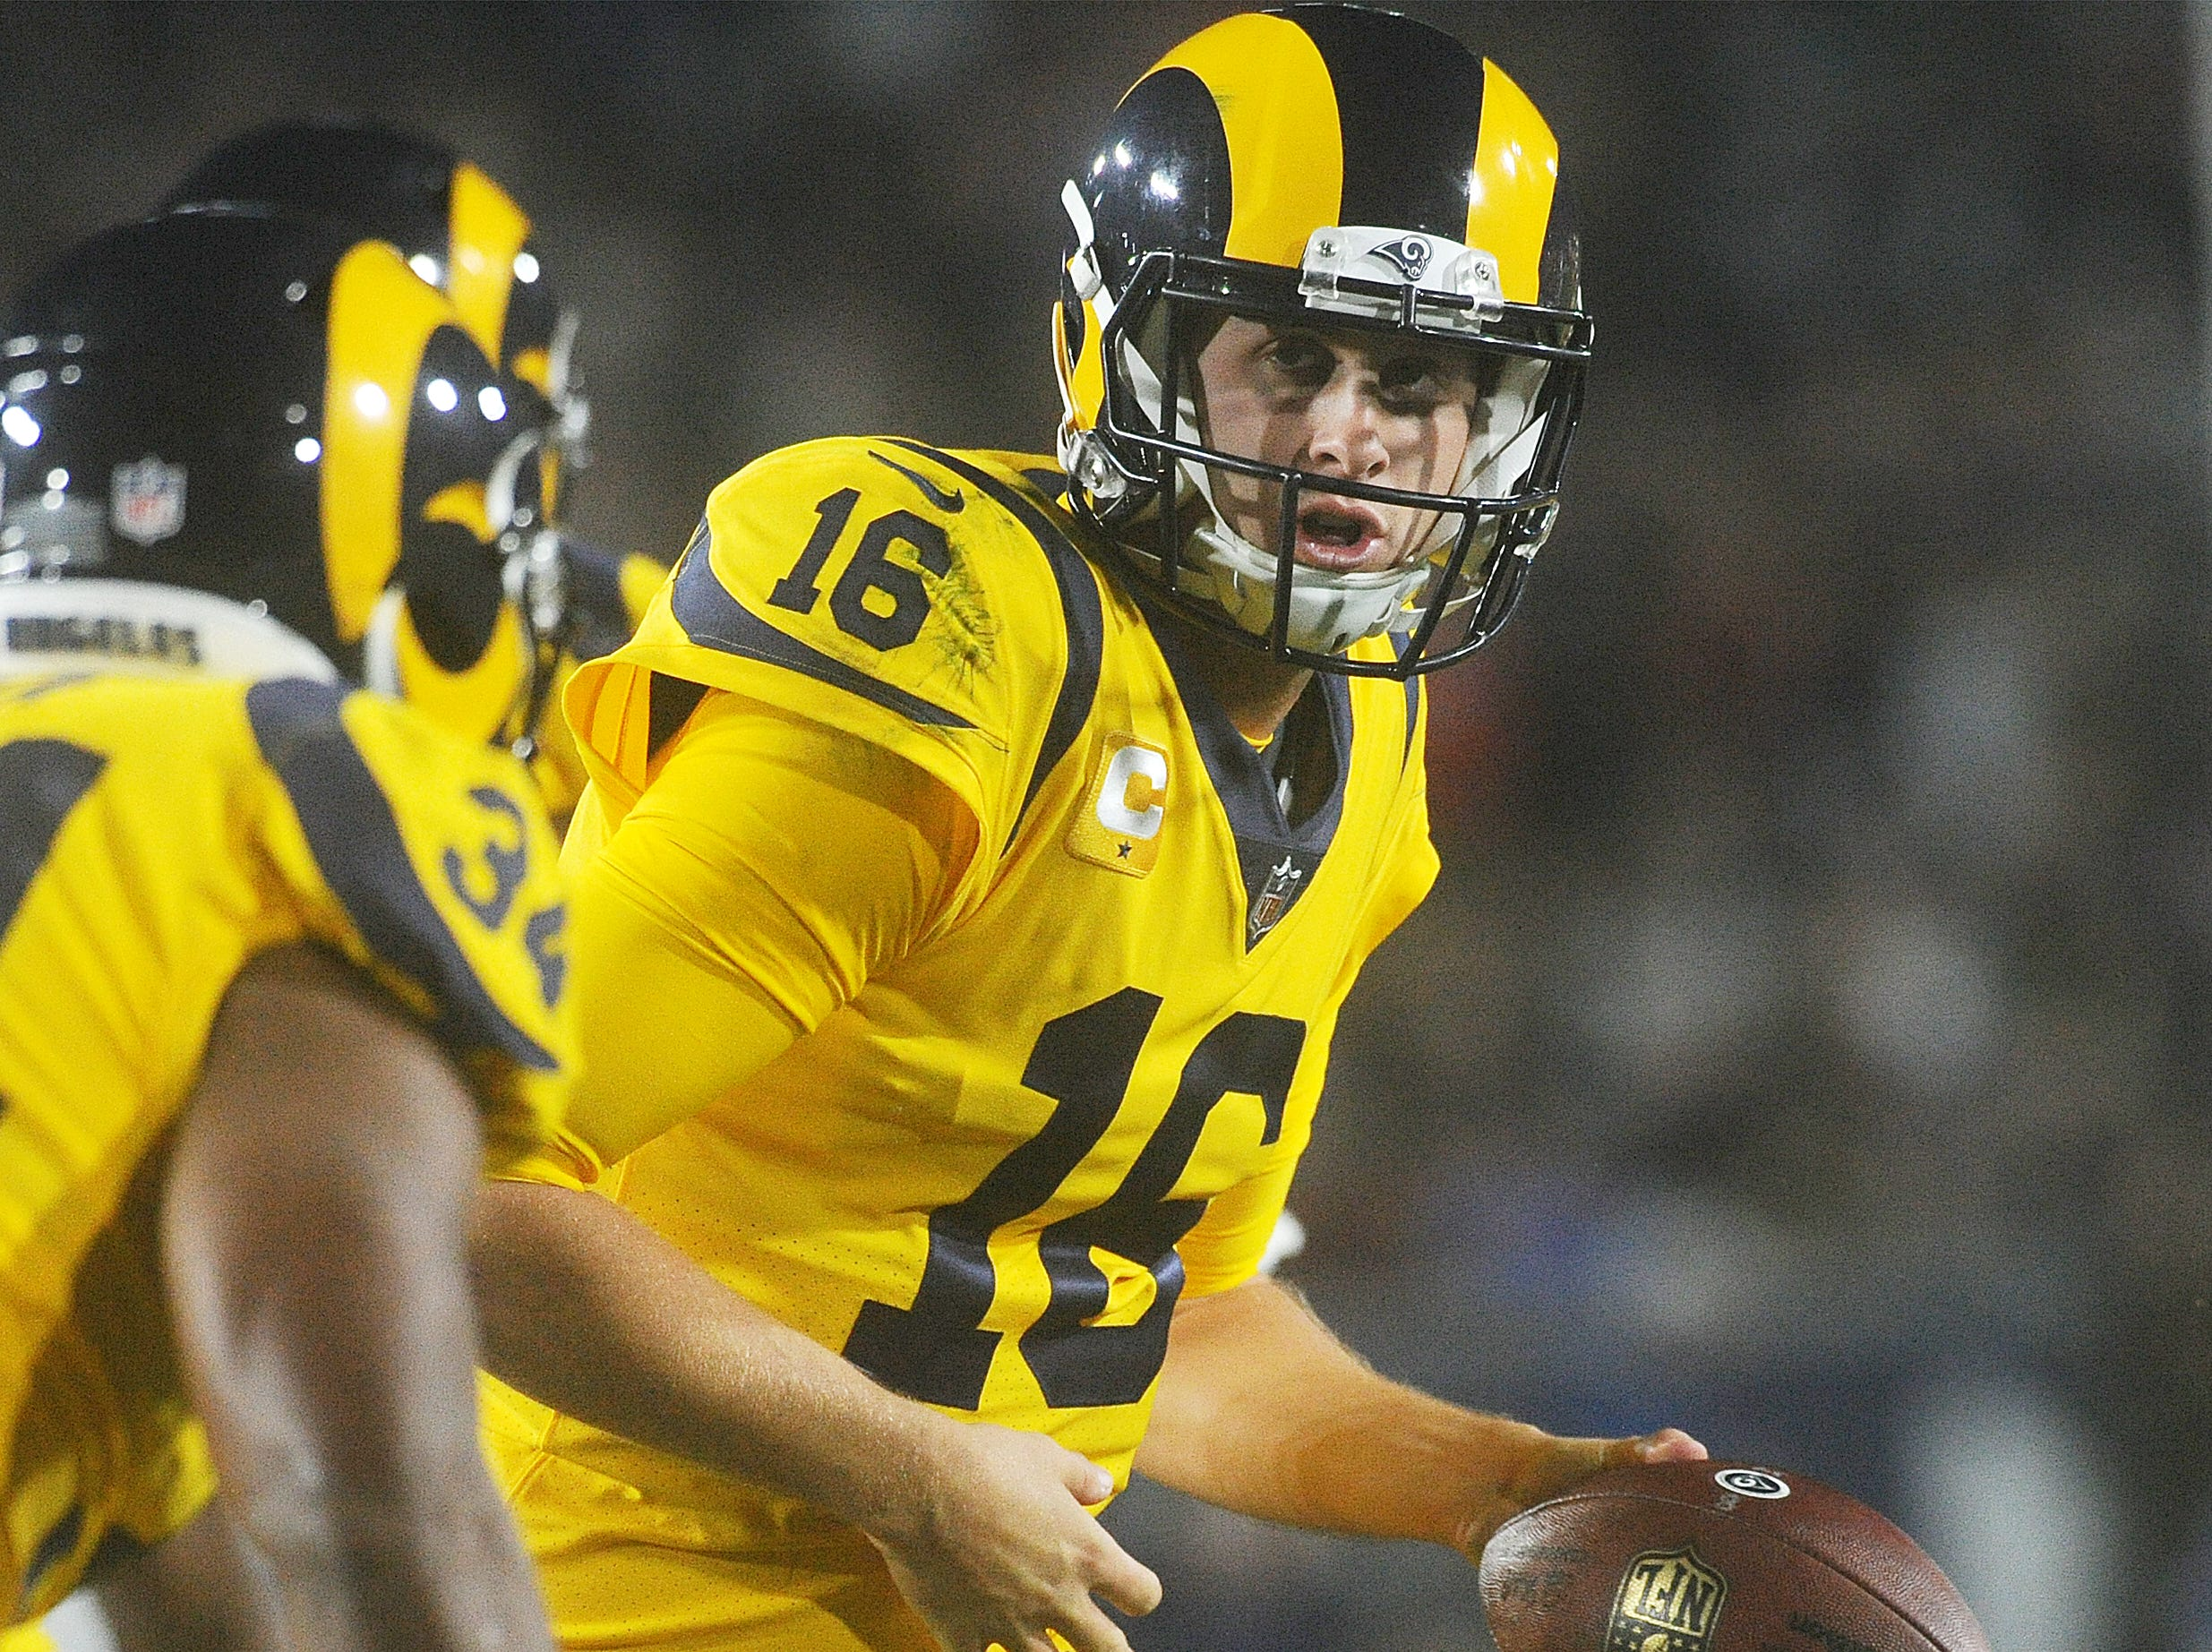 Rams quarterback Jared Goff hands the ball off against the Chiefs on Monday night. Goff completed 31 of 49 passes for 413 yards and four touchdowns and ran for another in a record-breaking 54-51 epic battle with the Chiefs on Monday night.